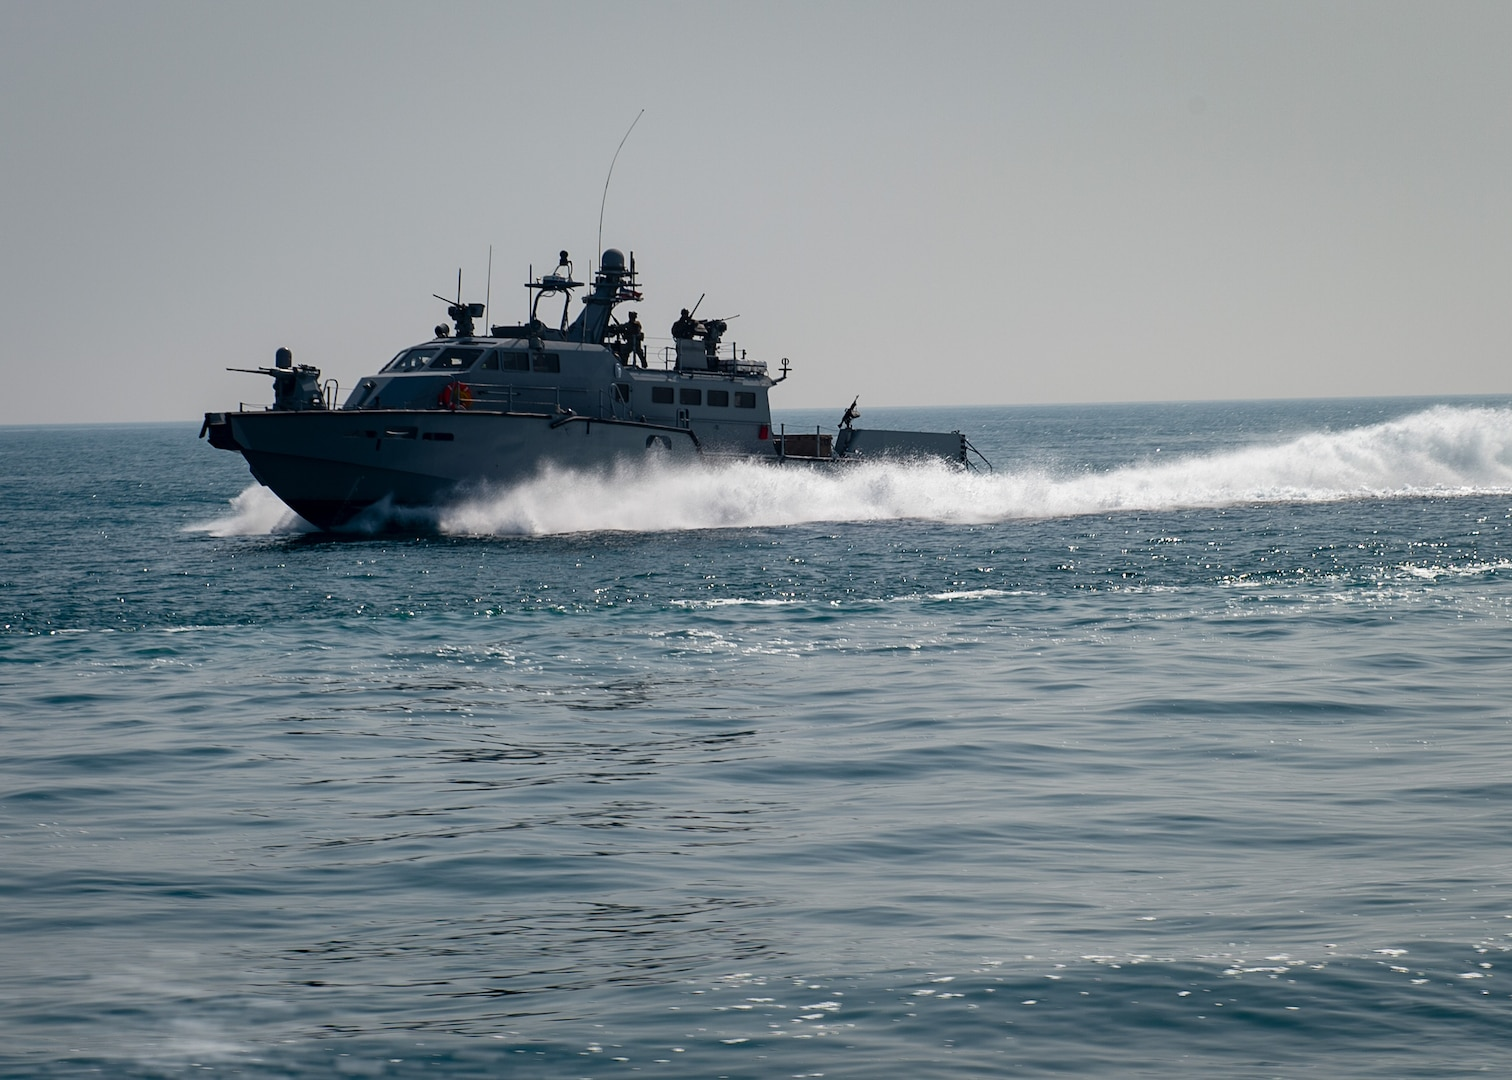 JUBAIL, Kingdom of Saudi Arabia 200223-N-JO908-1065 A Mark VI patrol boat attached to Commander, Task Force 56 participates in exercise Nautical Defender 20 in Jubail, Kingdom of Saudi Arabia Feb. 23. ND is a bilateral maritime exercise between the U.S. Navy and the Royal Saudi Naval Forces (RSNF) designed to build and sustain warfighting capabilities, support long term regional security and enhance military-to-military interoperability with the U.S. and Kingdom of Saudi Arabia. (U.S. Navy photo by Mass Communication Specialist 1st Class Kory Alsberry)